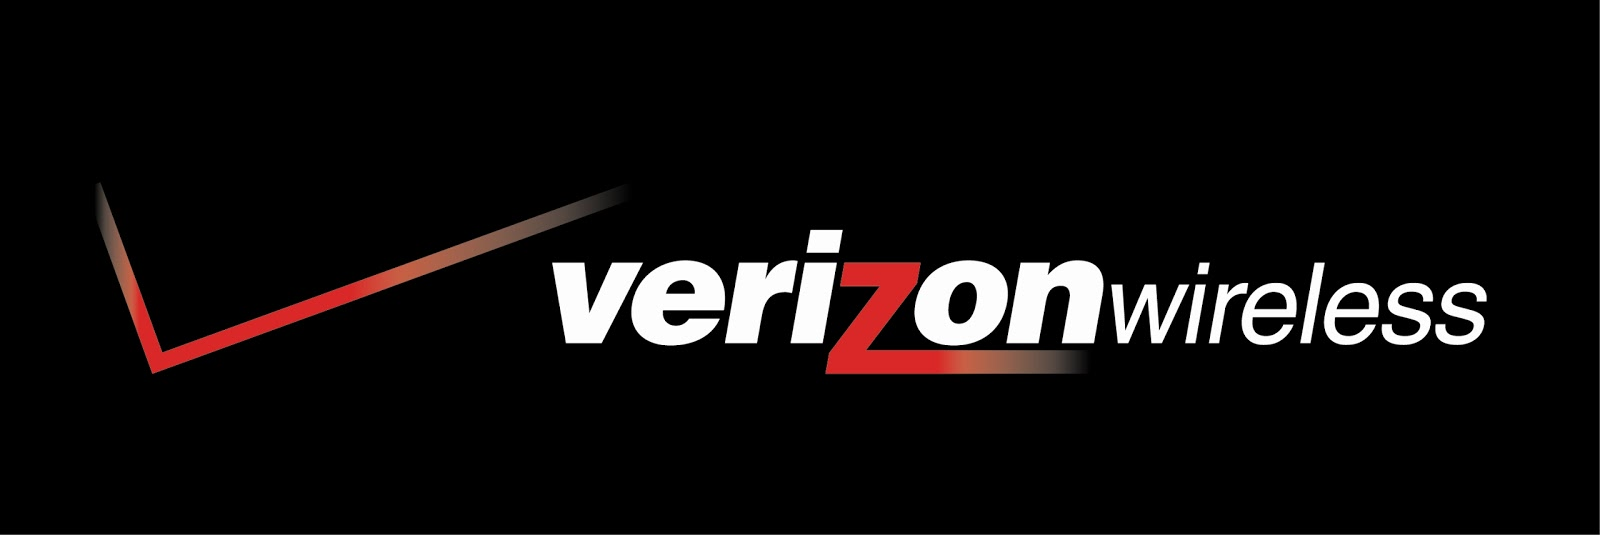 Verizon Customer Service Usa | Verizon Wireless Customer Support ...